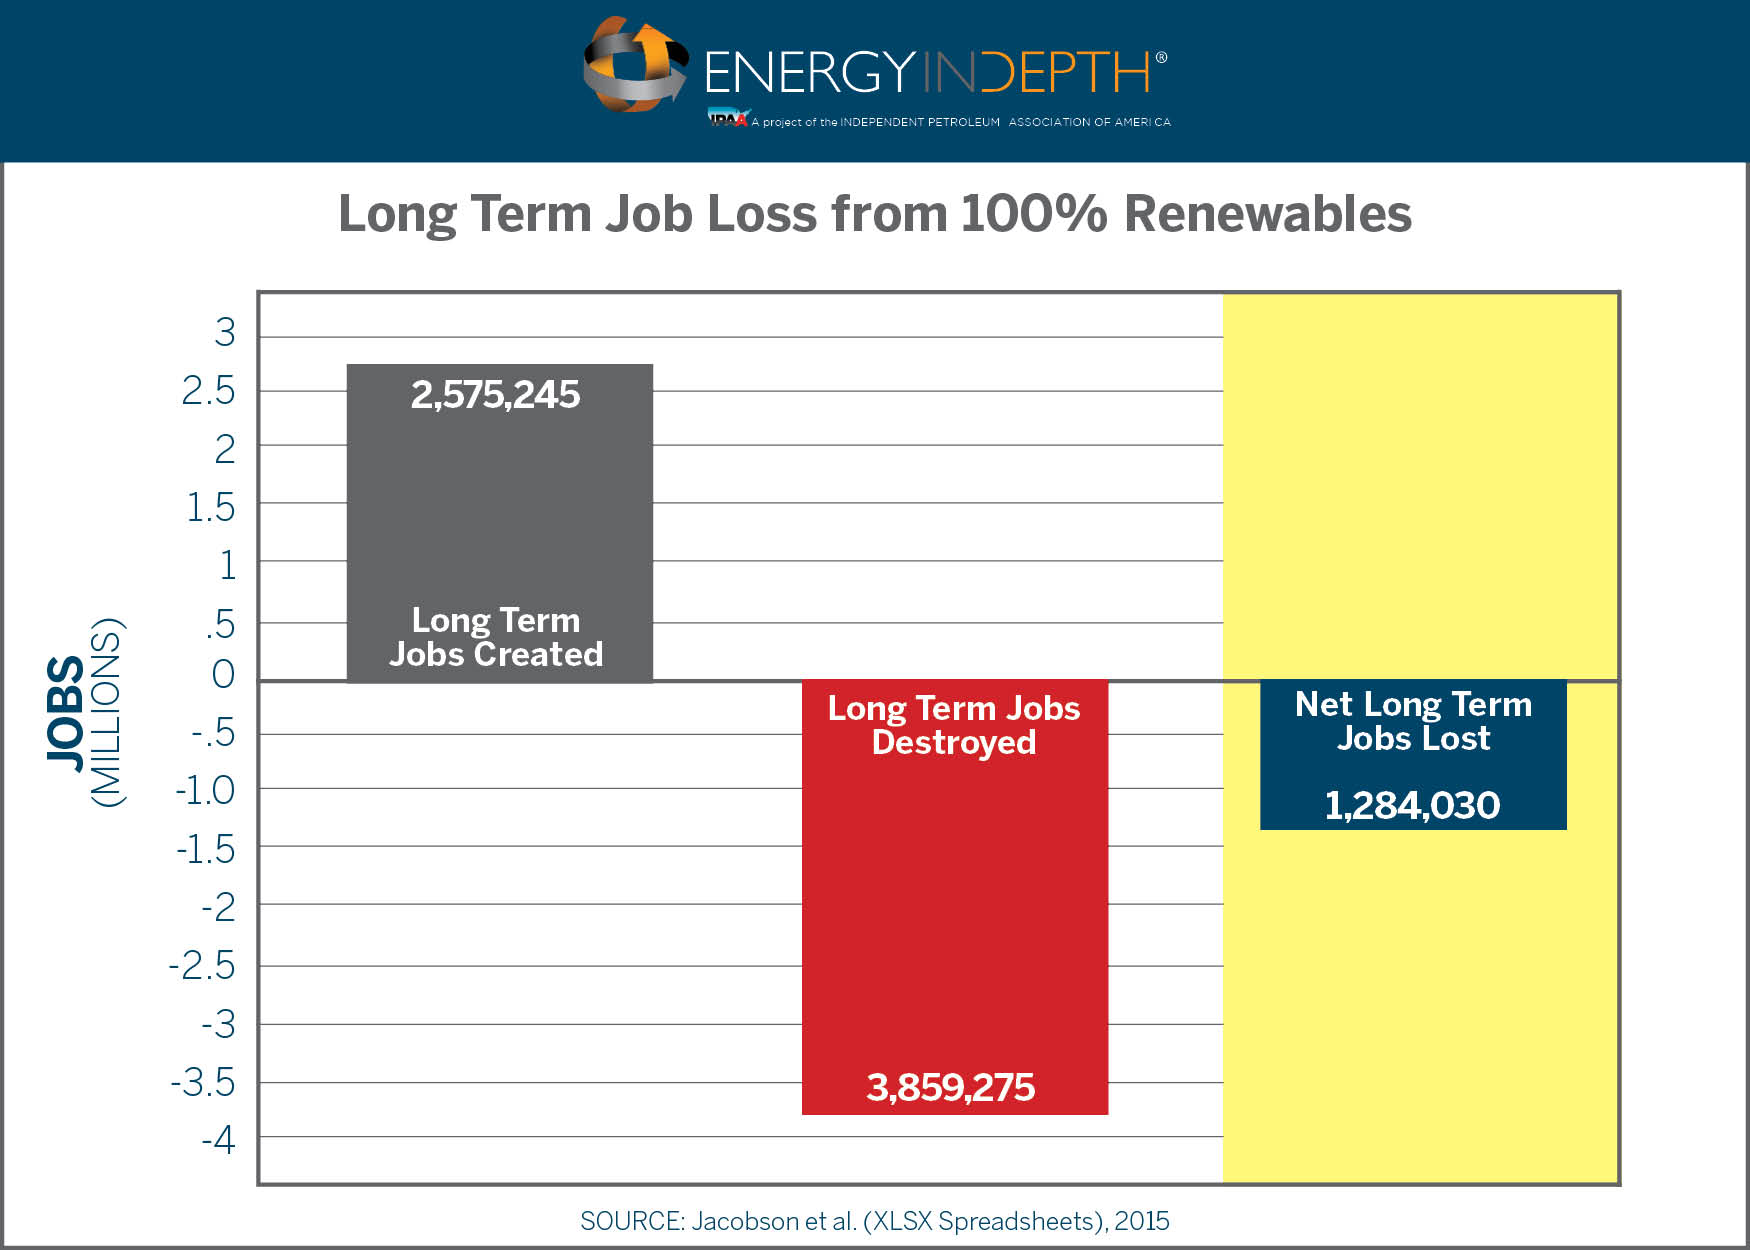 climate activists push study showing million lost jobs from eid renewables job loss